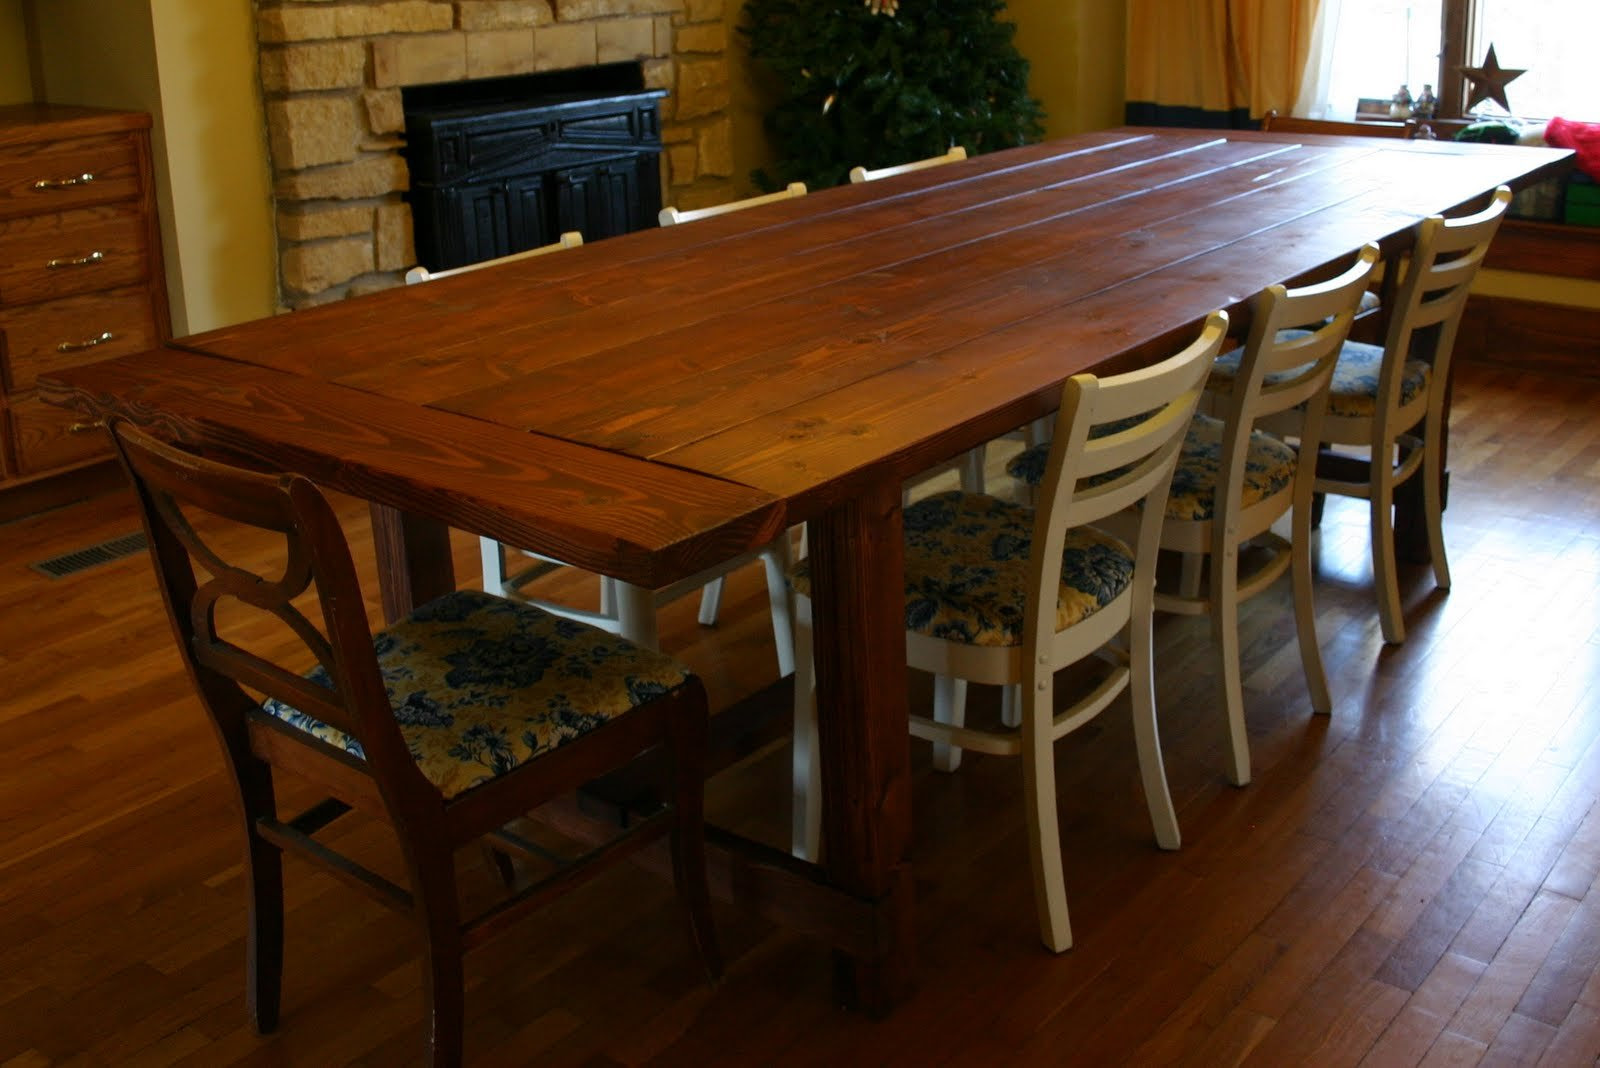 Wood Kitchen Table Plans Free - Types Of Wood